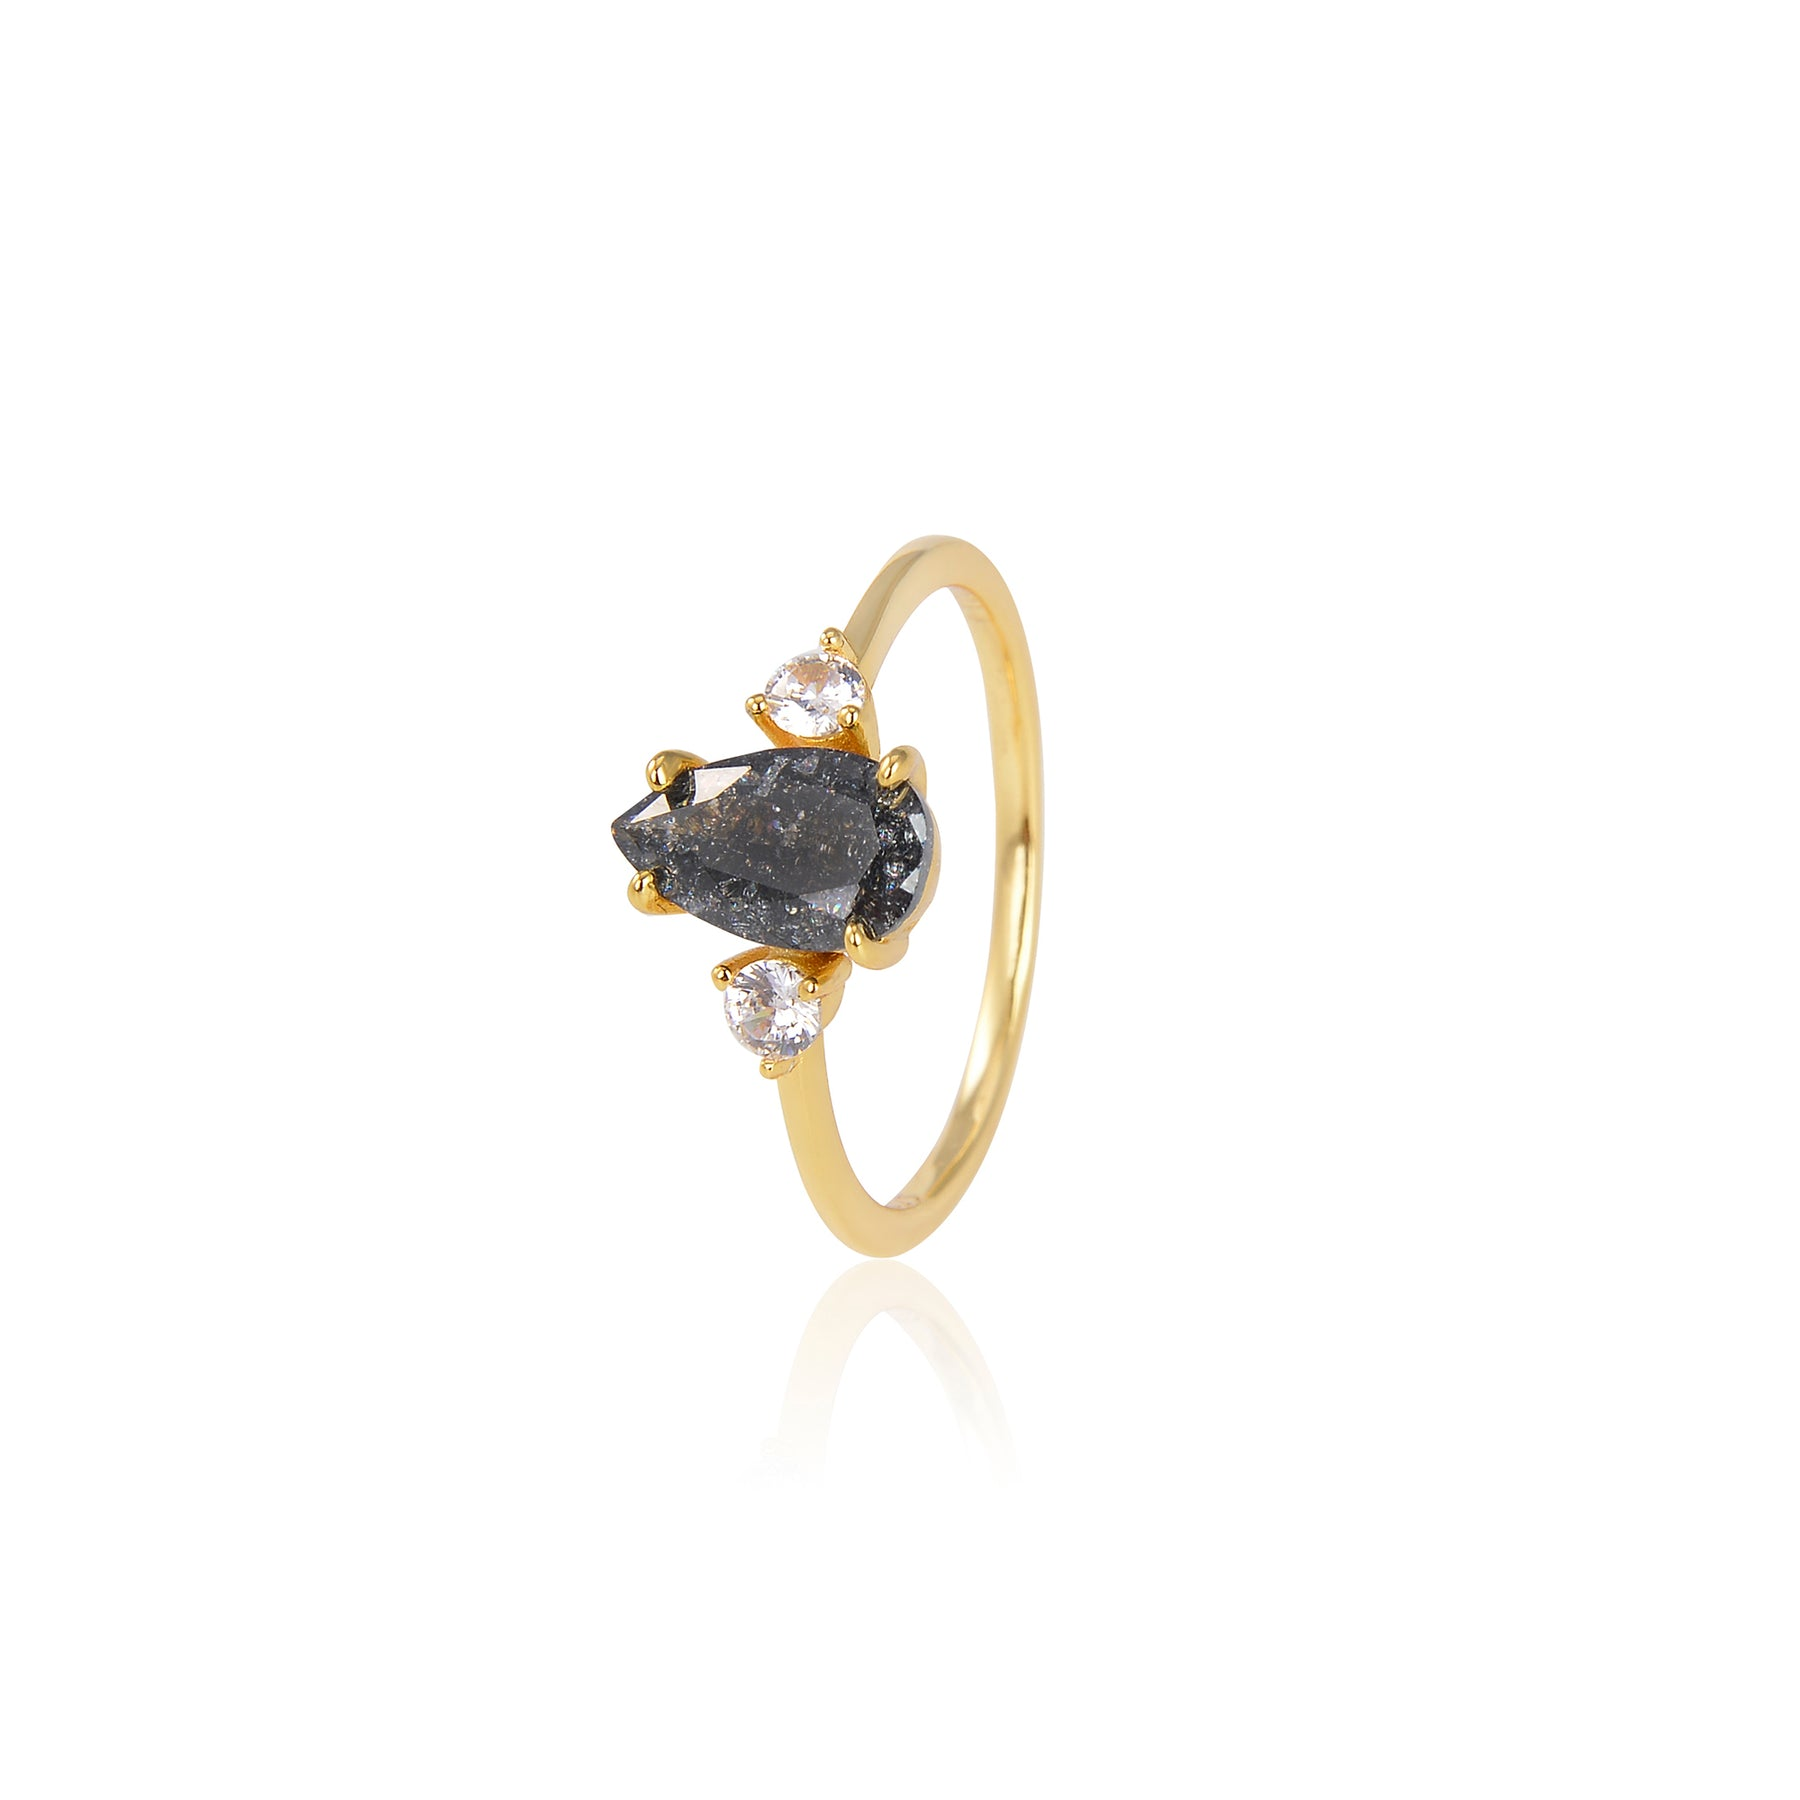 BLACK DROP ZIRCON RING GOLD PLATED